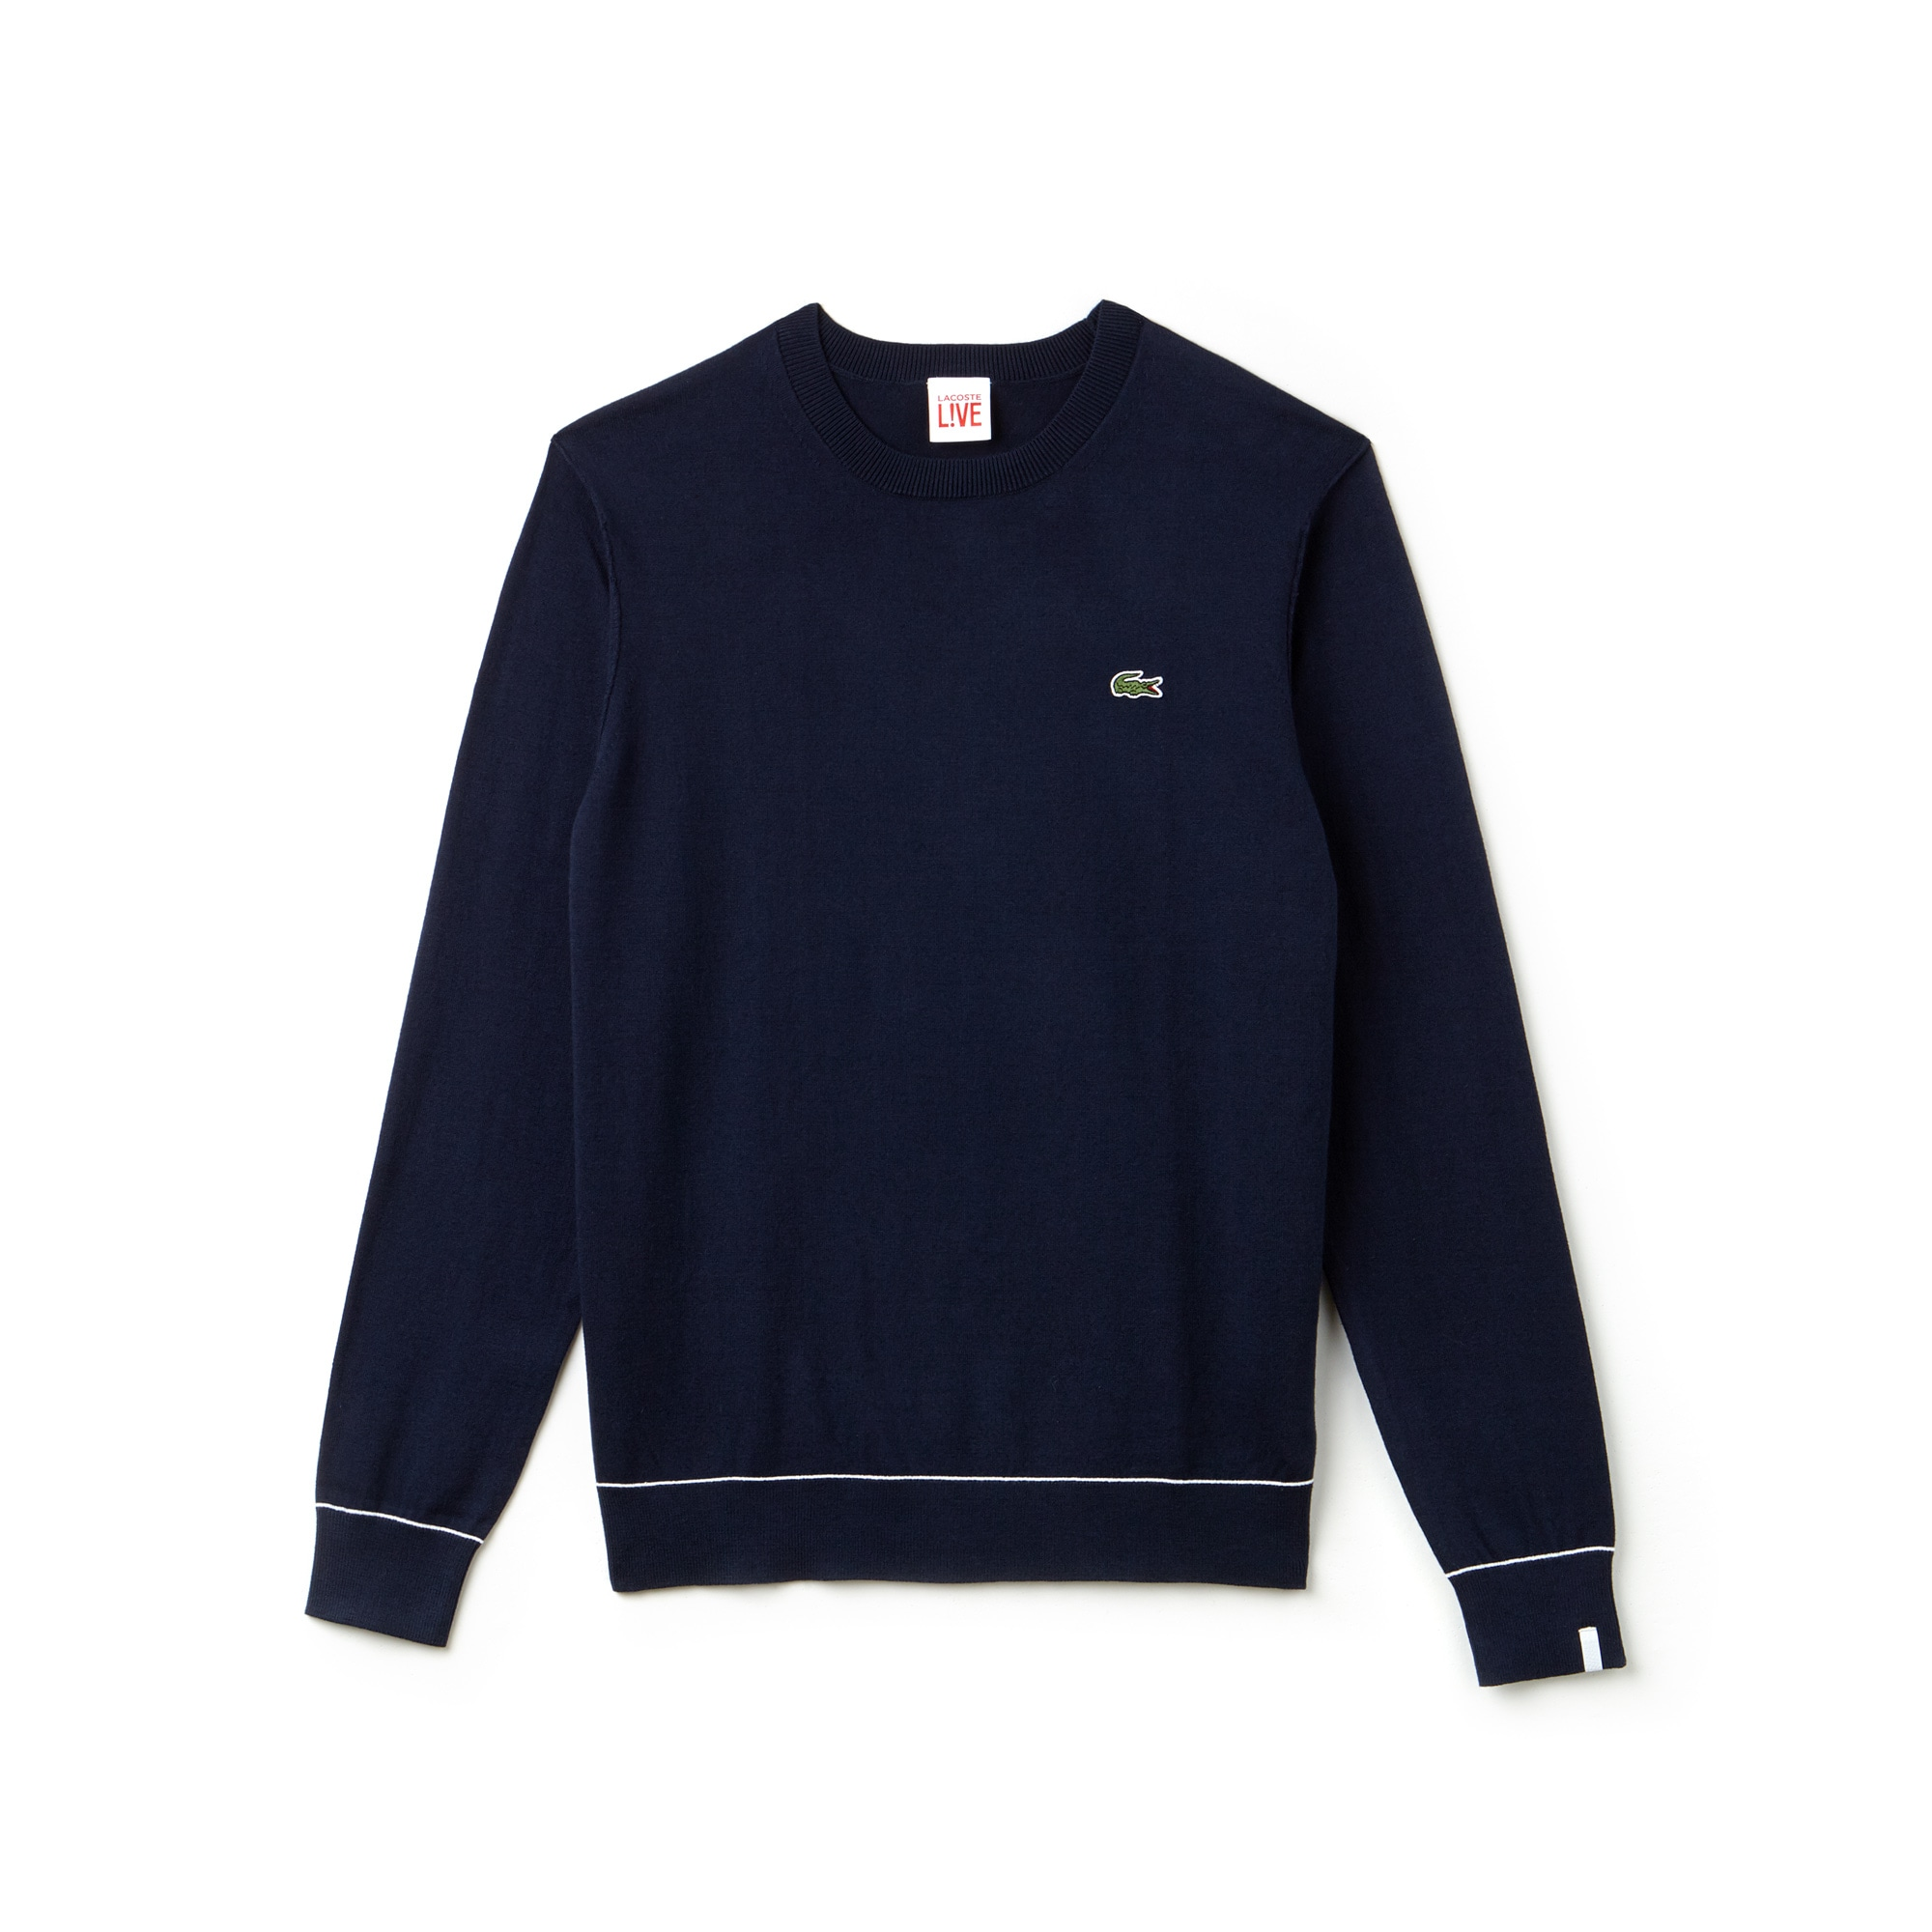 Men's Lacoste LIVE Crew Neck Cotton And Silk Jersey Sweater